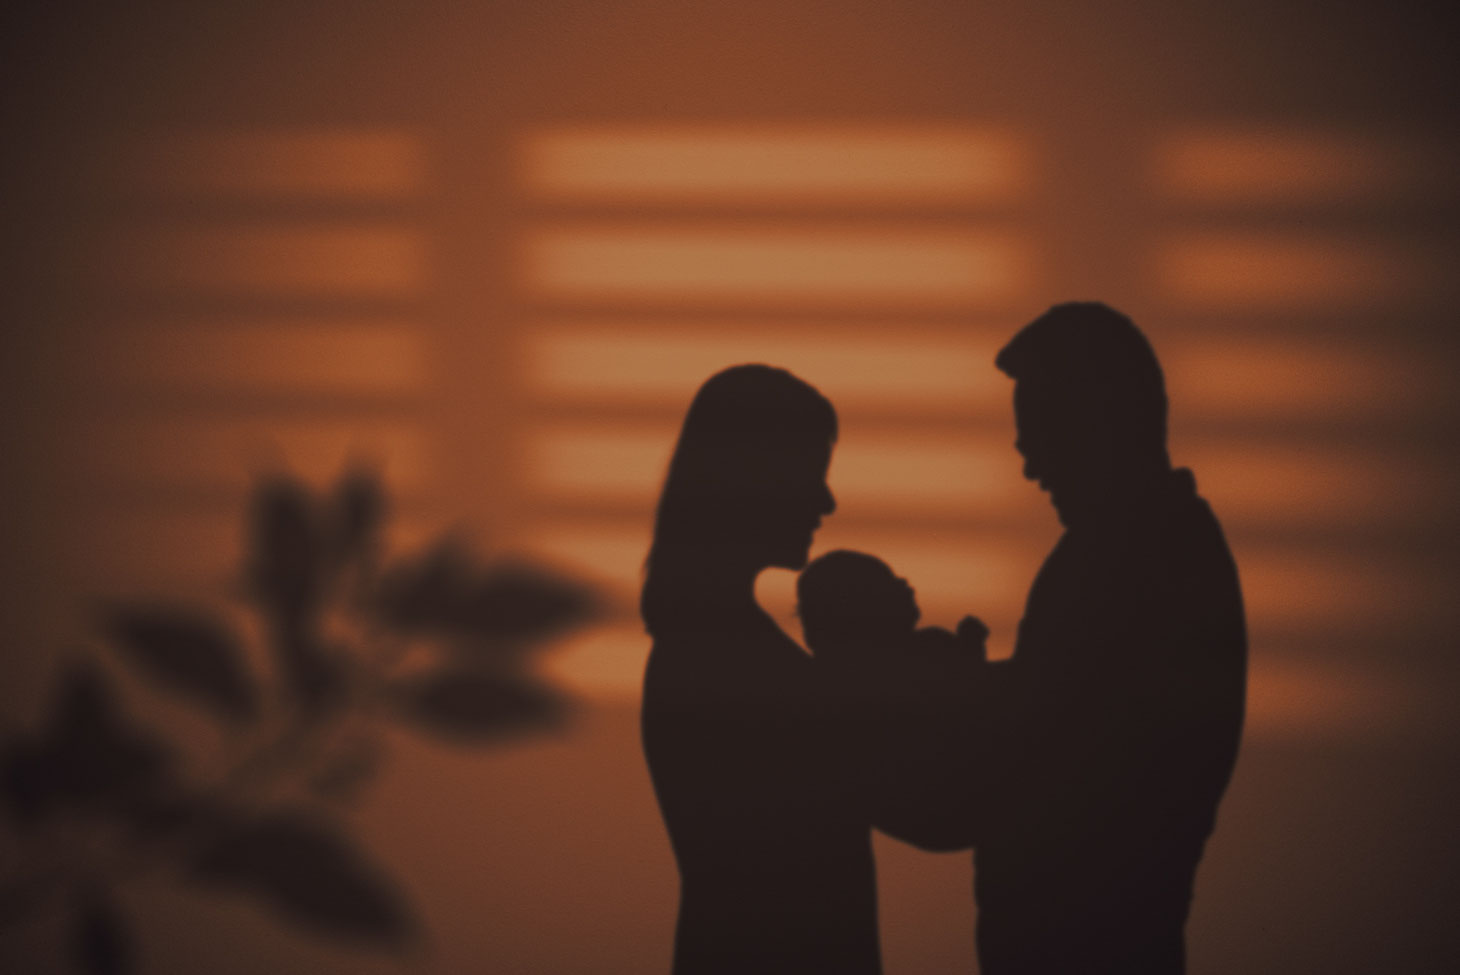 silhouette of a shadow of a branch, a mother, a new baby, and a father against a wall. Light from window also casts shadows of a blind on the wall. Wall is a pinkish-orange colour.